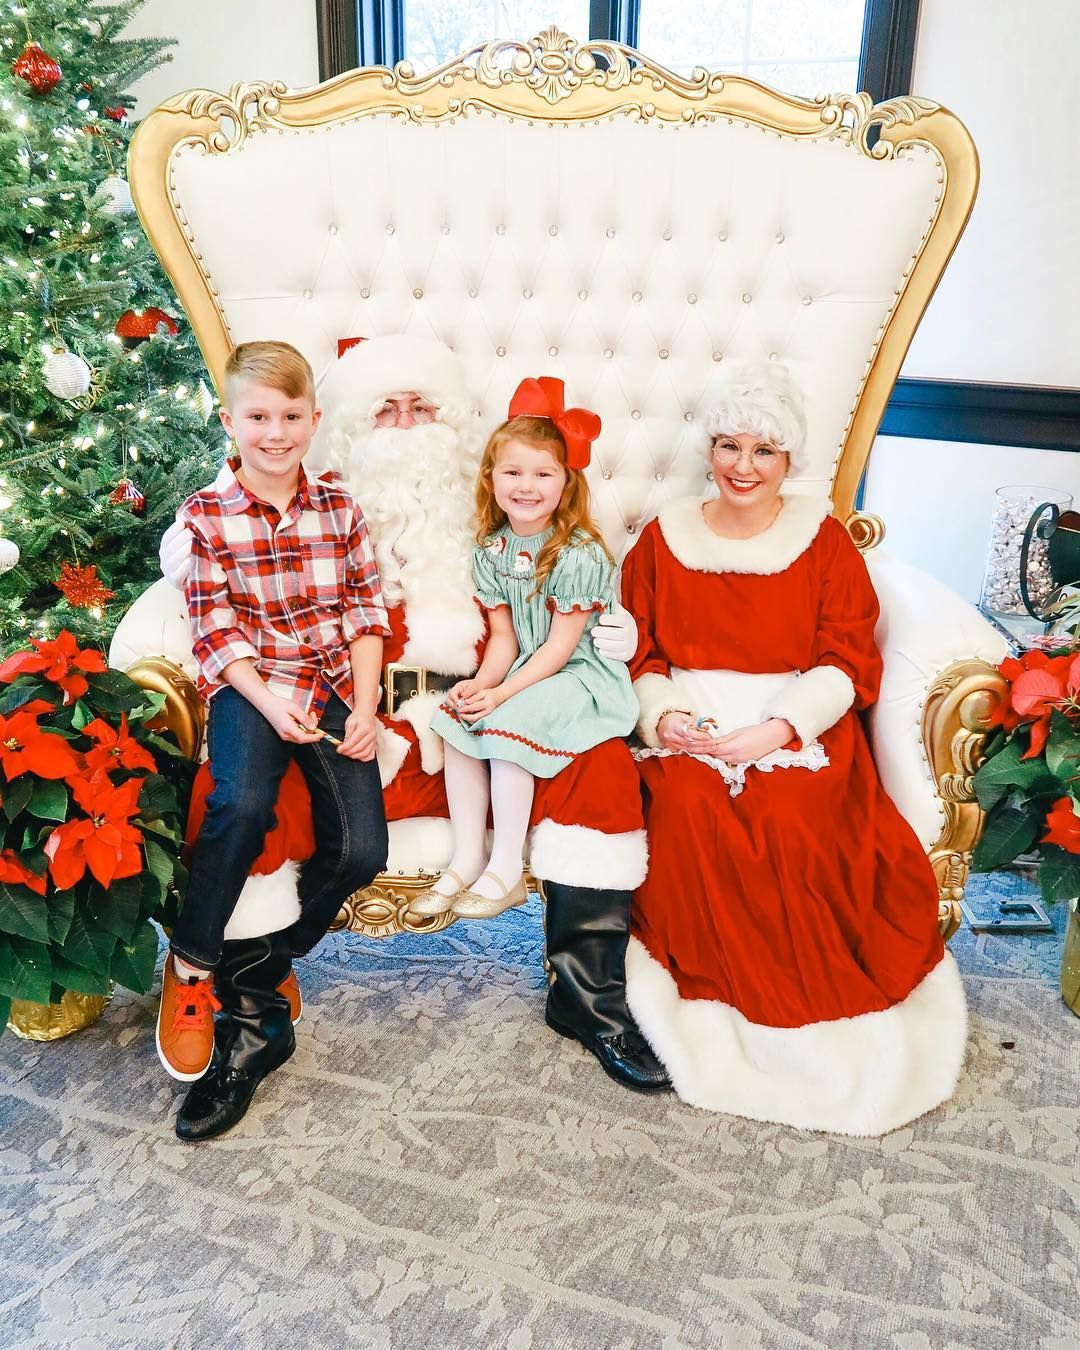 Yesterday we did a Santa brunch with the family and the kids got to tell Santa  what they wanted for Christmas! They LOVED it!🎅♥️🎄 . . . #teamdarley #amydarley #santa #santabrunch #santaiknowhim #momswithcameras #igmotherhood #christmastime #christmas #momof2 #momlife #momsofinstagram #motherhoodunplugged #motherhoodslens #santaclaus #alliwantforchristmas